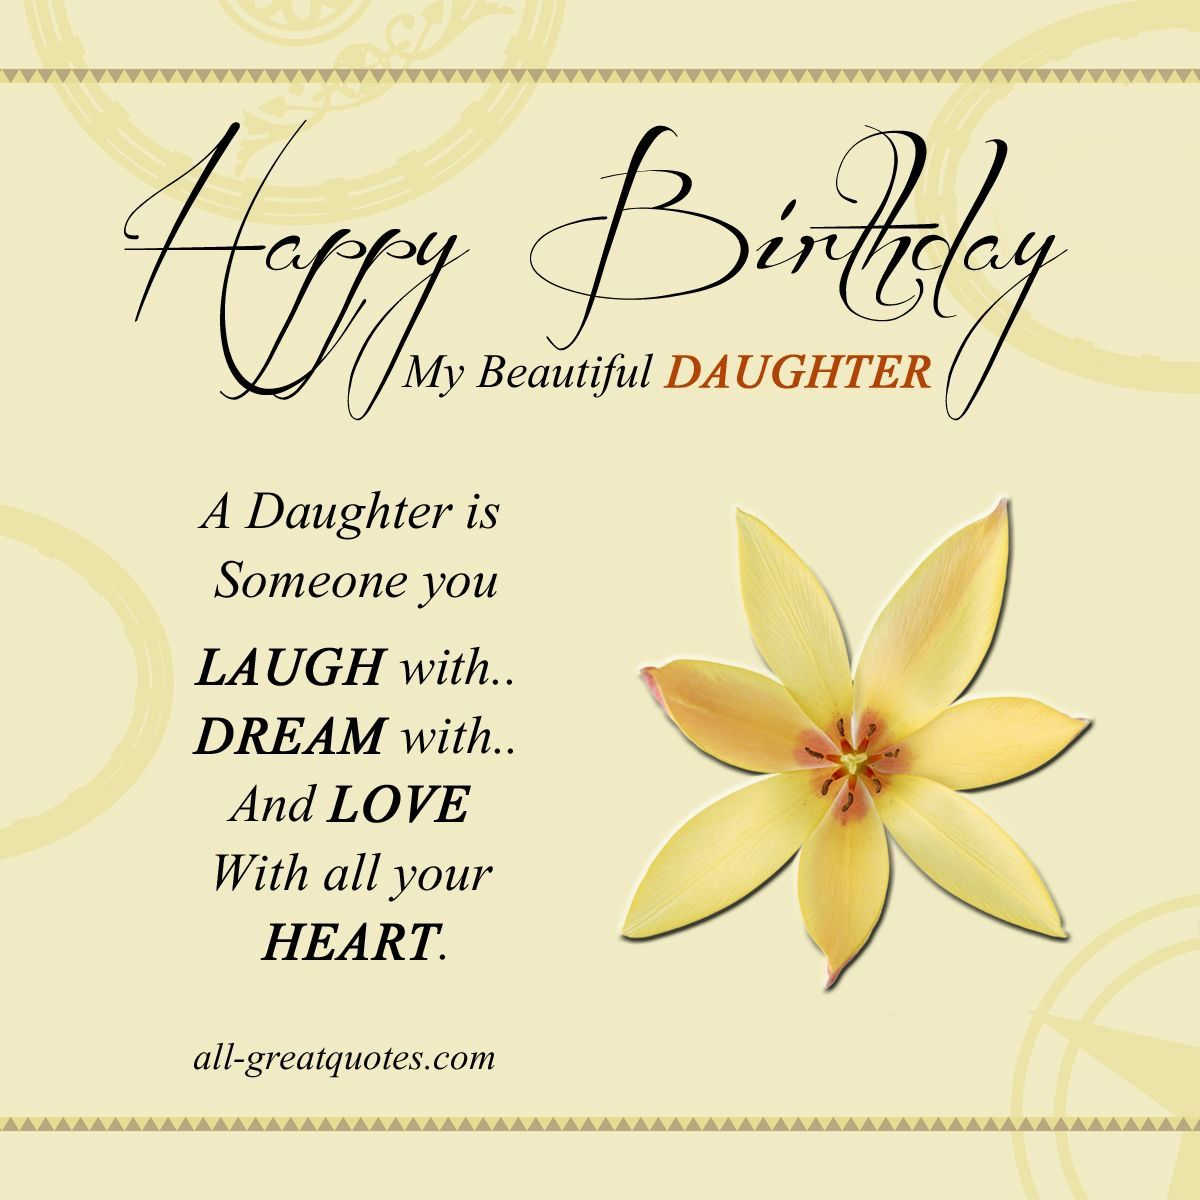 Pin By Anabel Morales On Words Birthday Wishes For Daughter Birthday Greetings For Daughter Birthday Quotes For Daughter